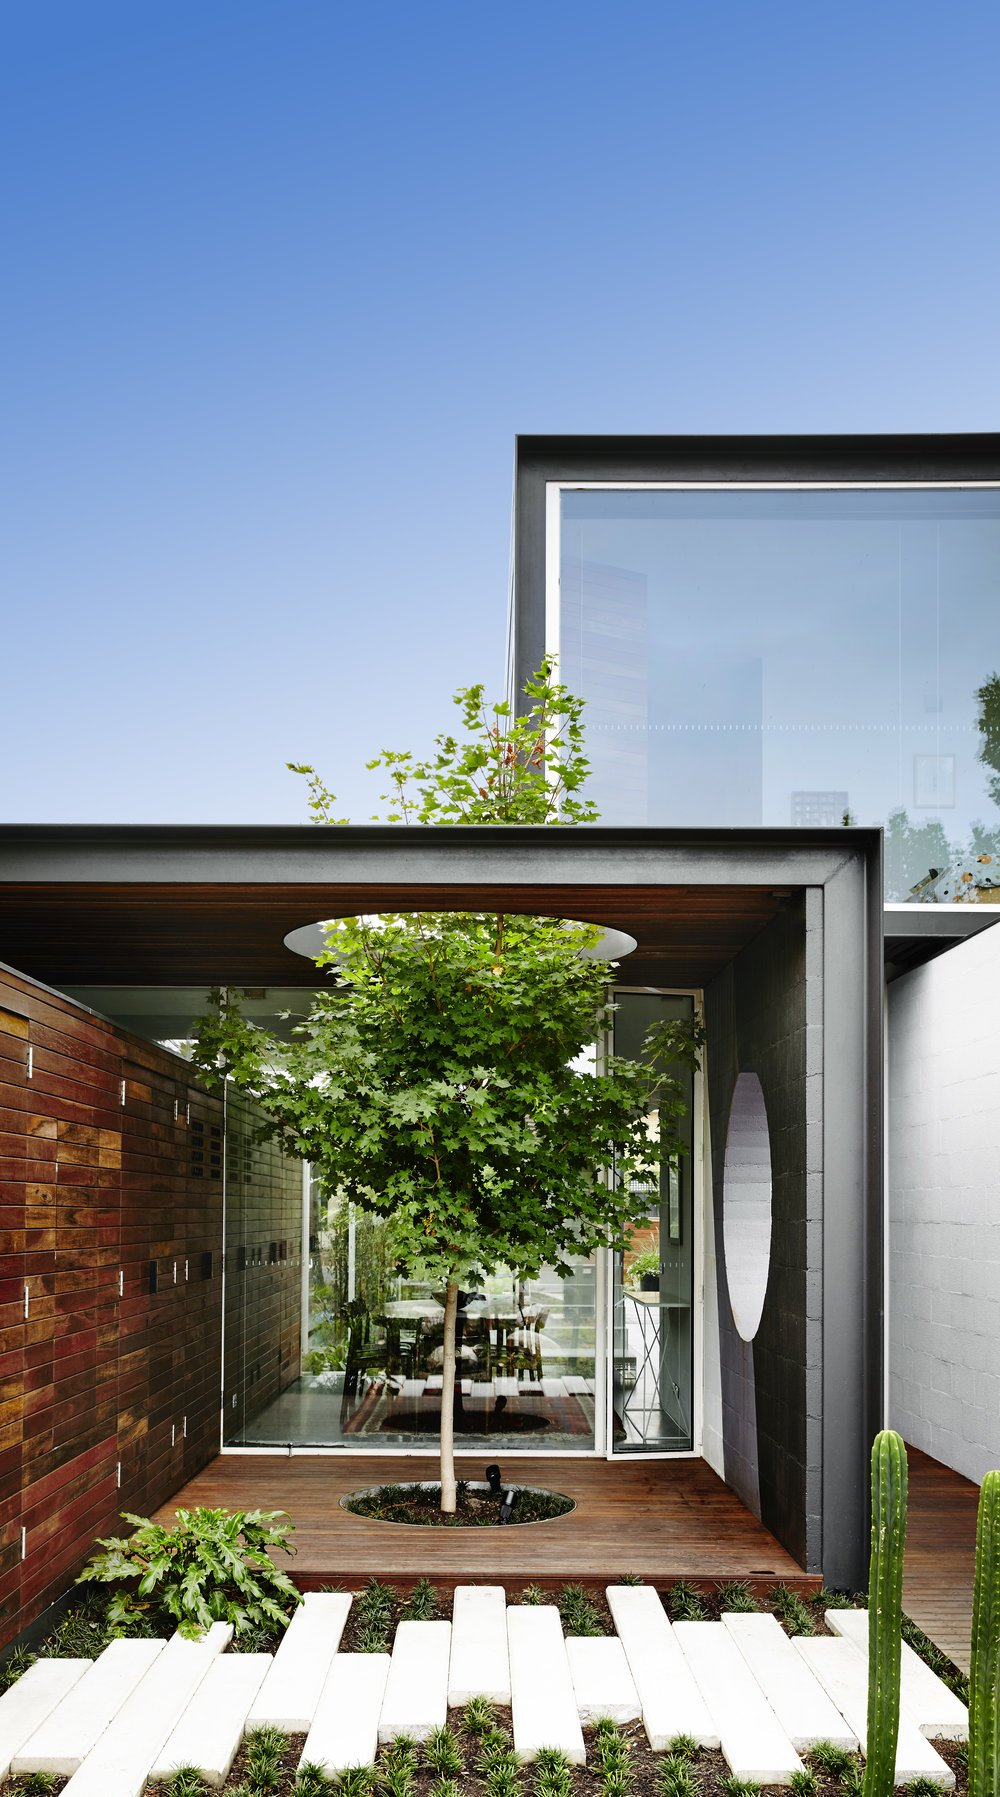 modernist australian house - maynard archtects - exterior patio